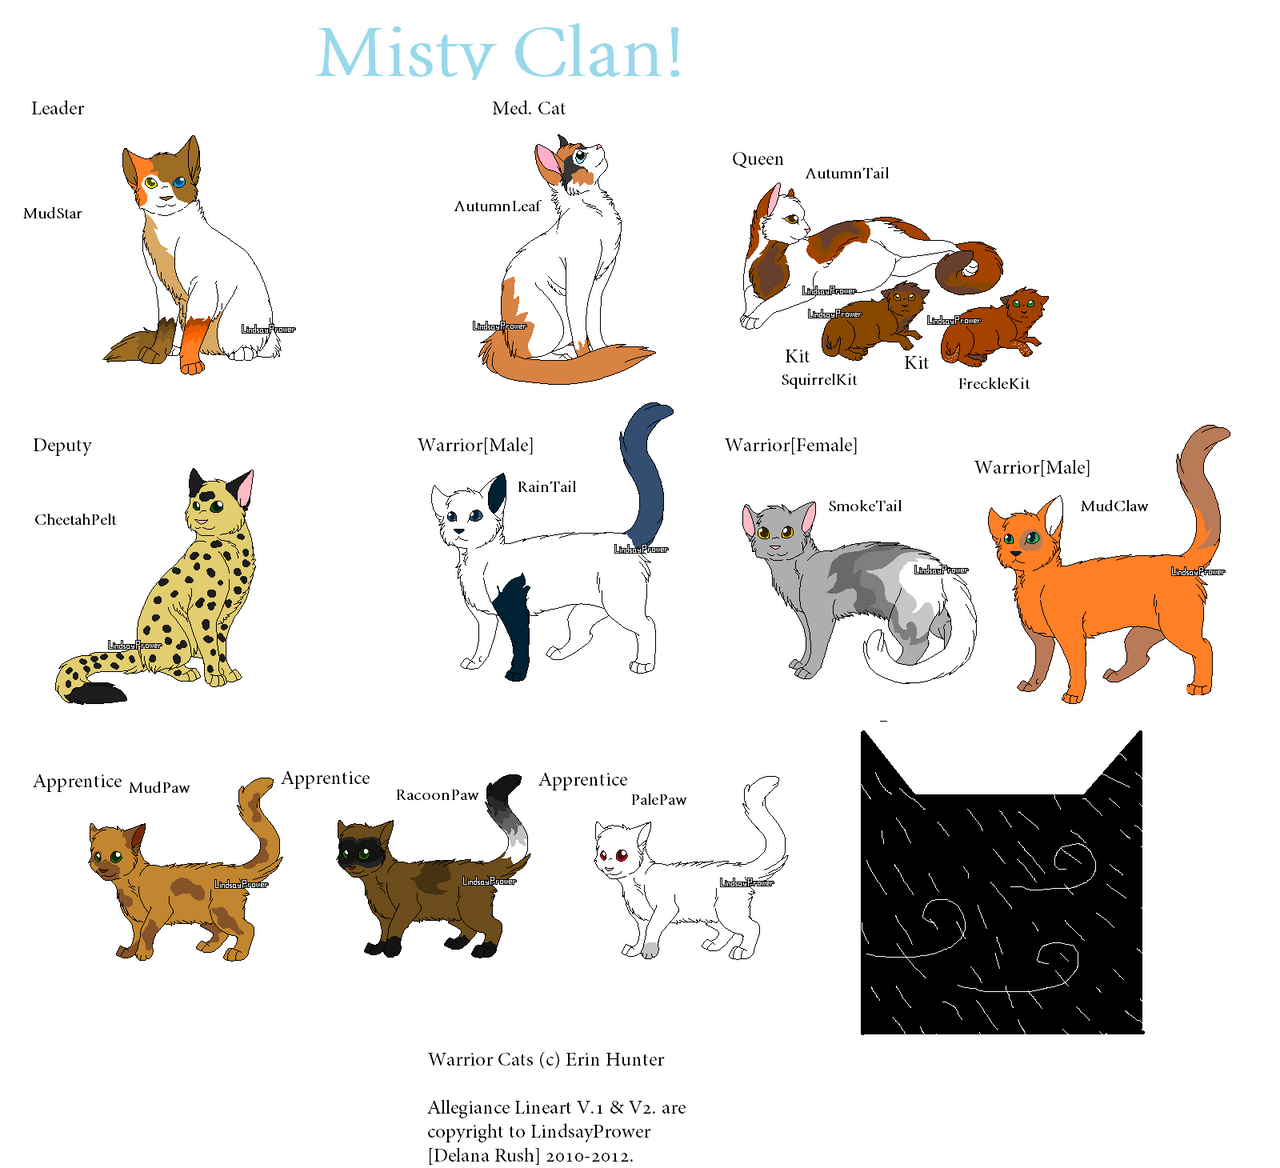 Warrior Cat Ranks And Names